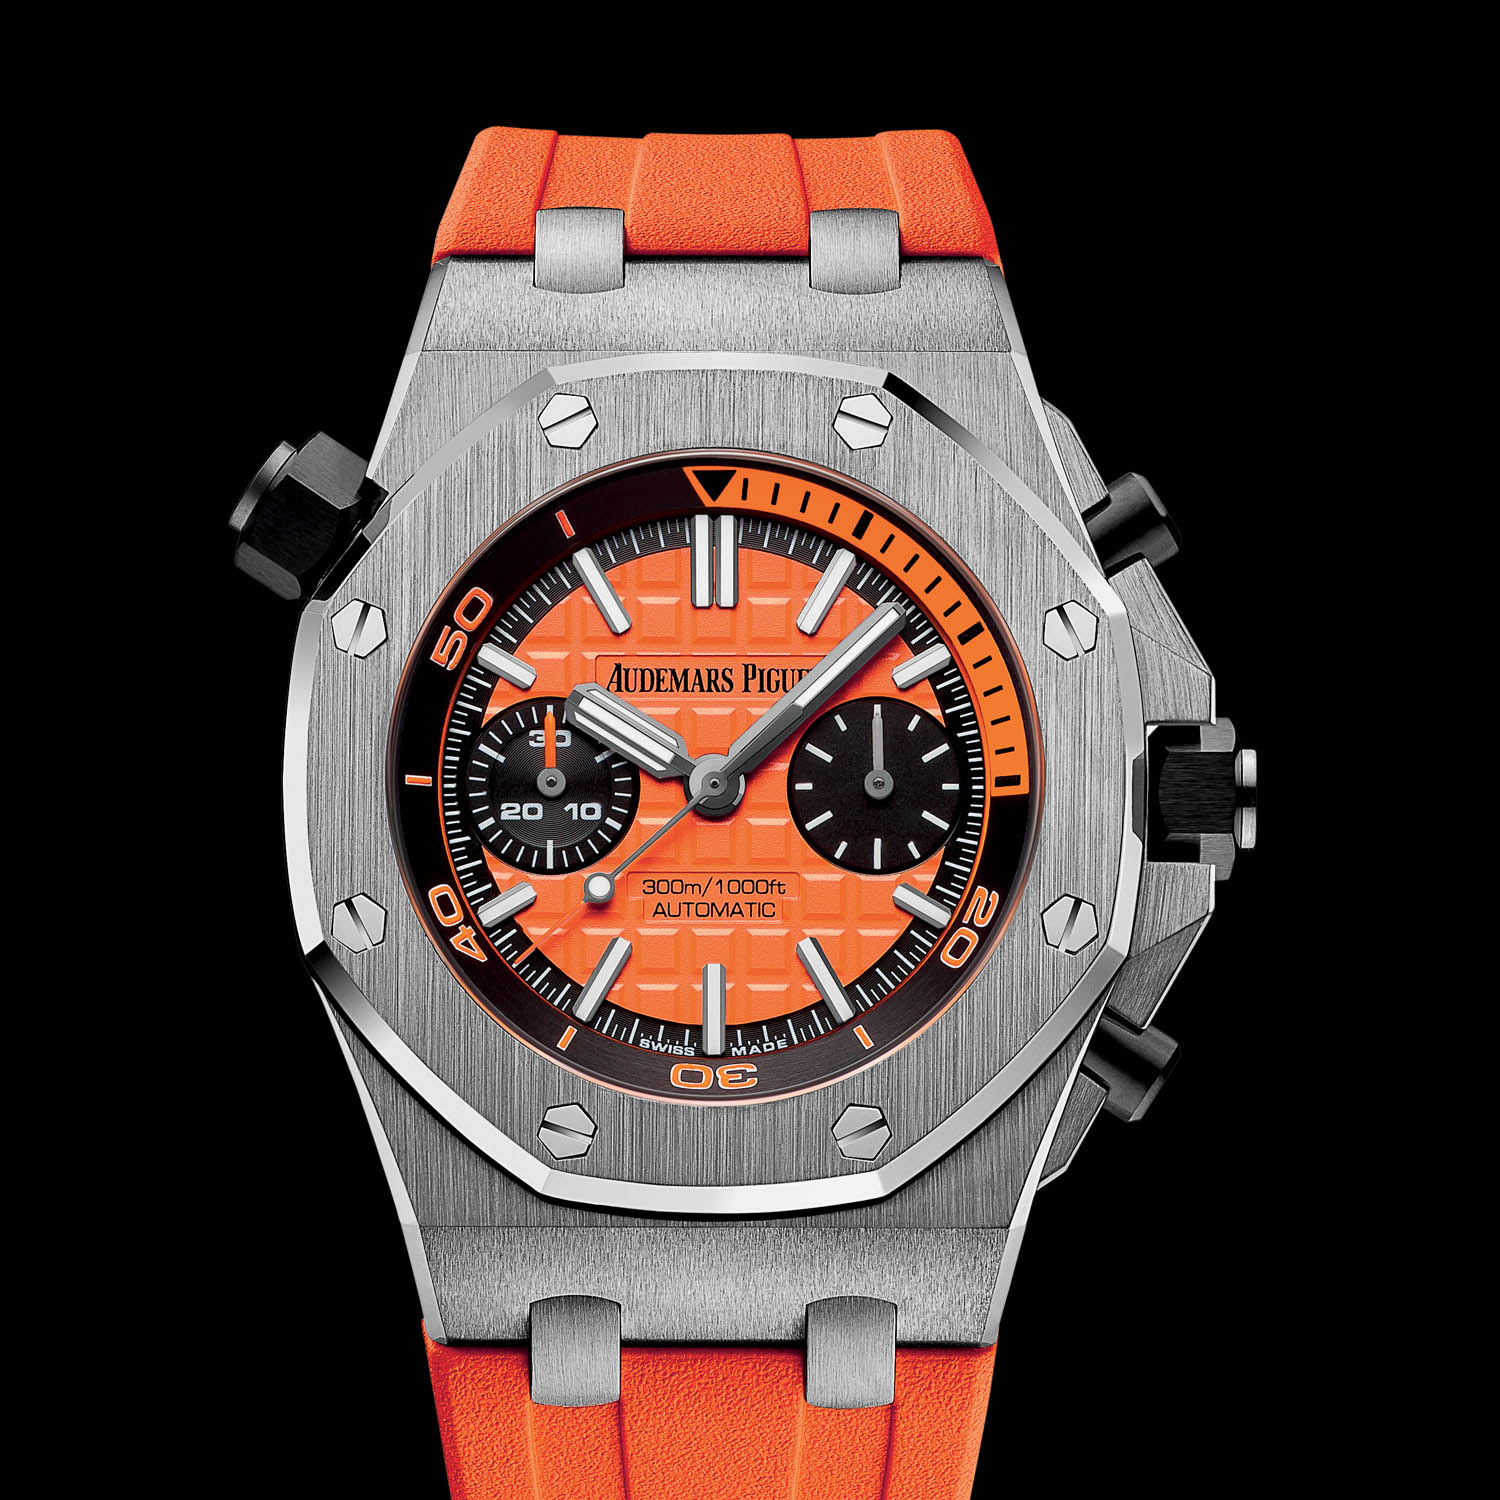 Sihh 2016 audemars piguet royal oak offshore diver chronograph 26703st specs price for Audemars watches